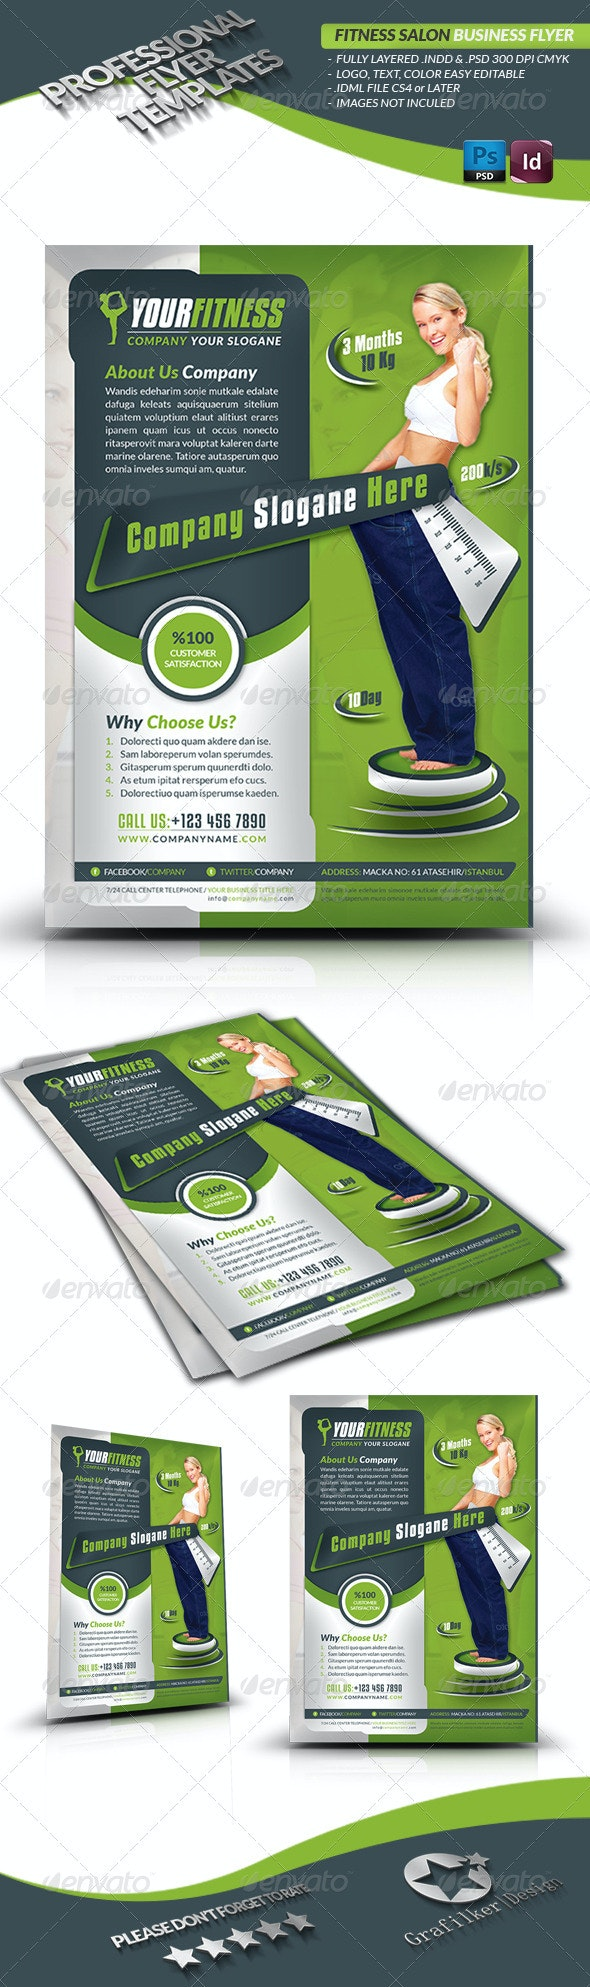 Fitness Center Business Flyer - Corporate Flyers